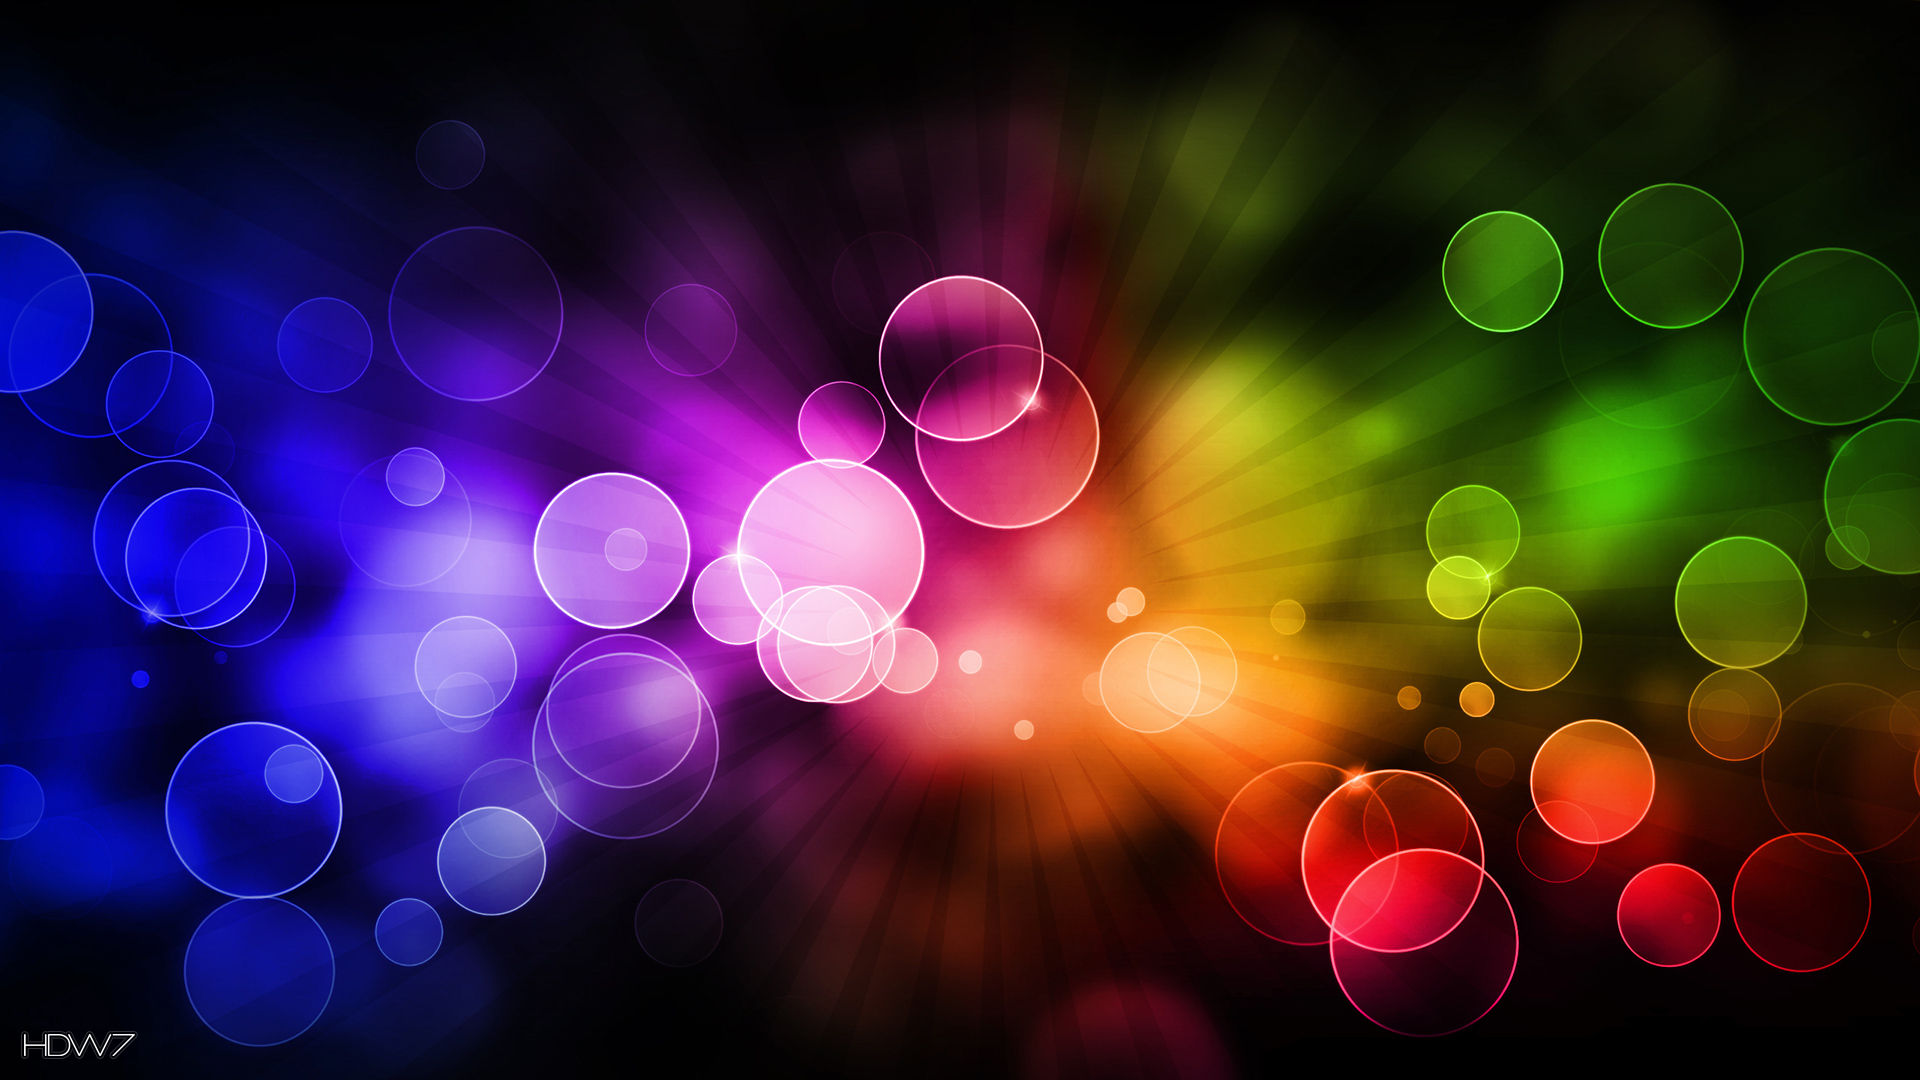 Wallpaper Backgrounds Free bokeh abstract background free